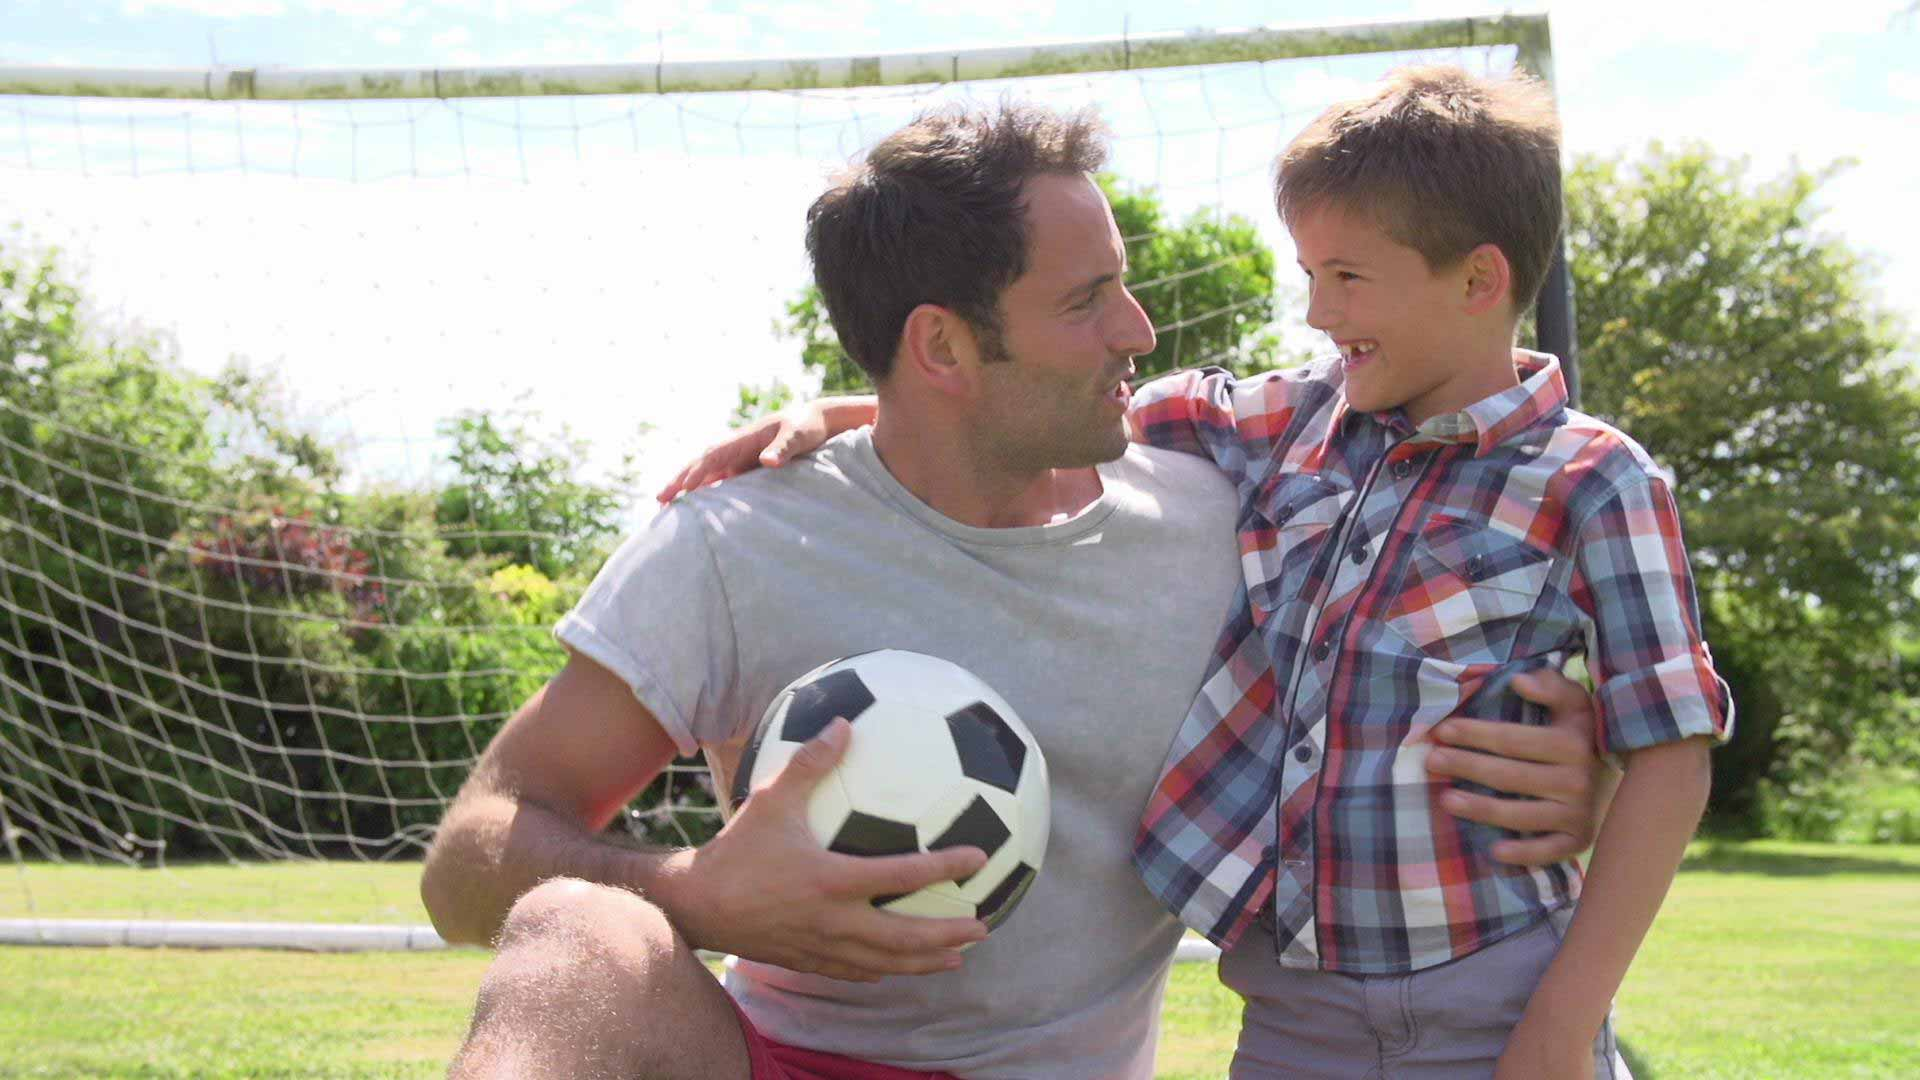 father teaching son soccer